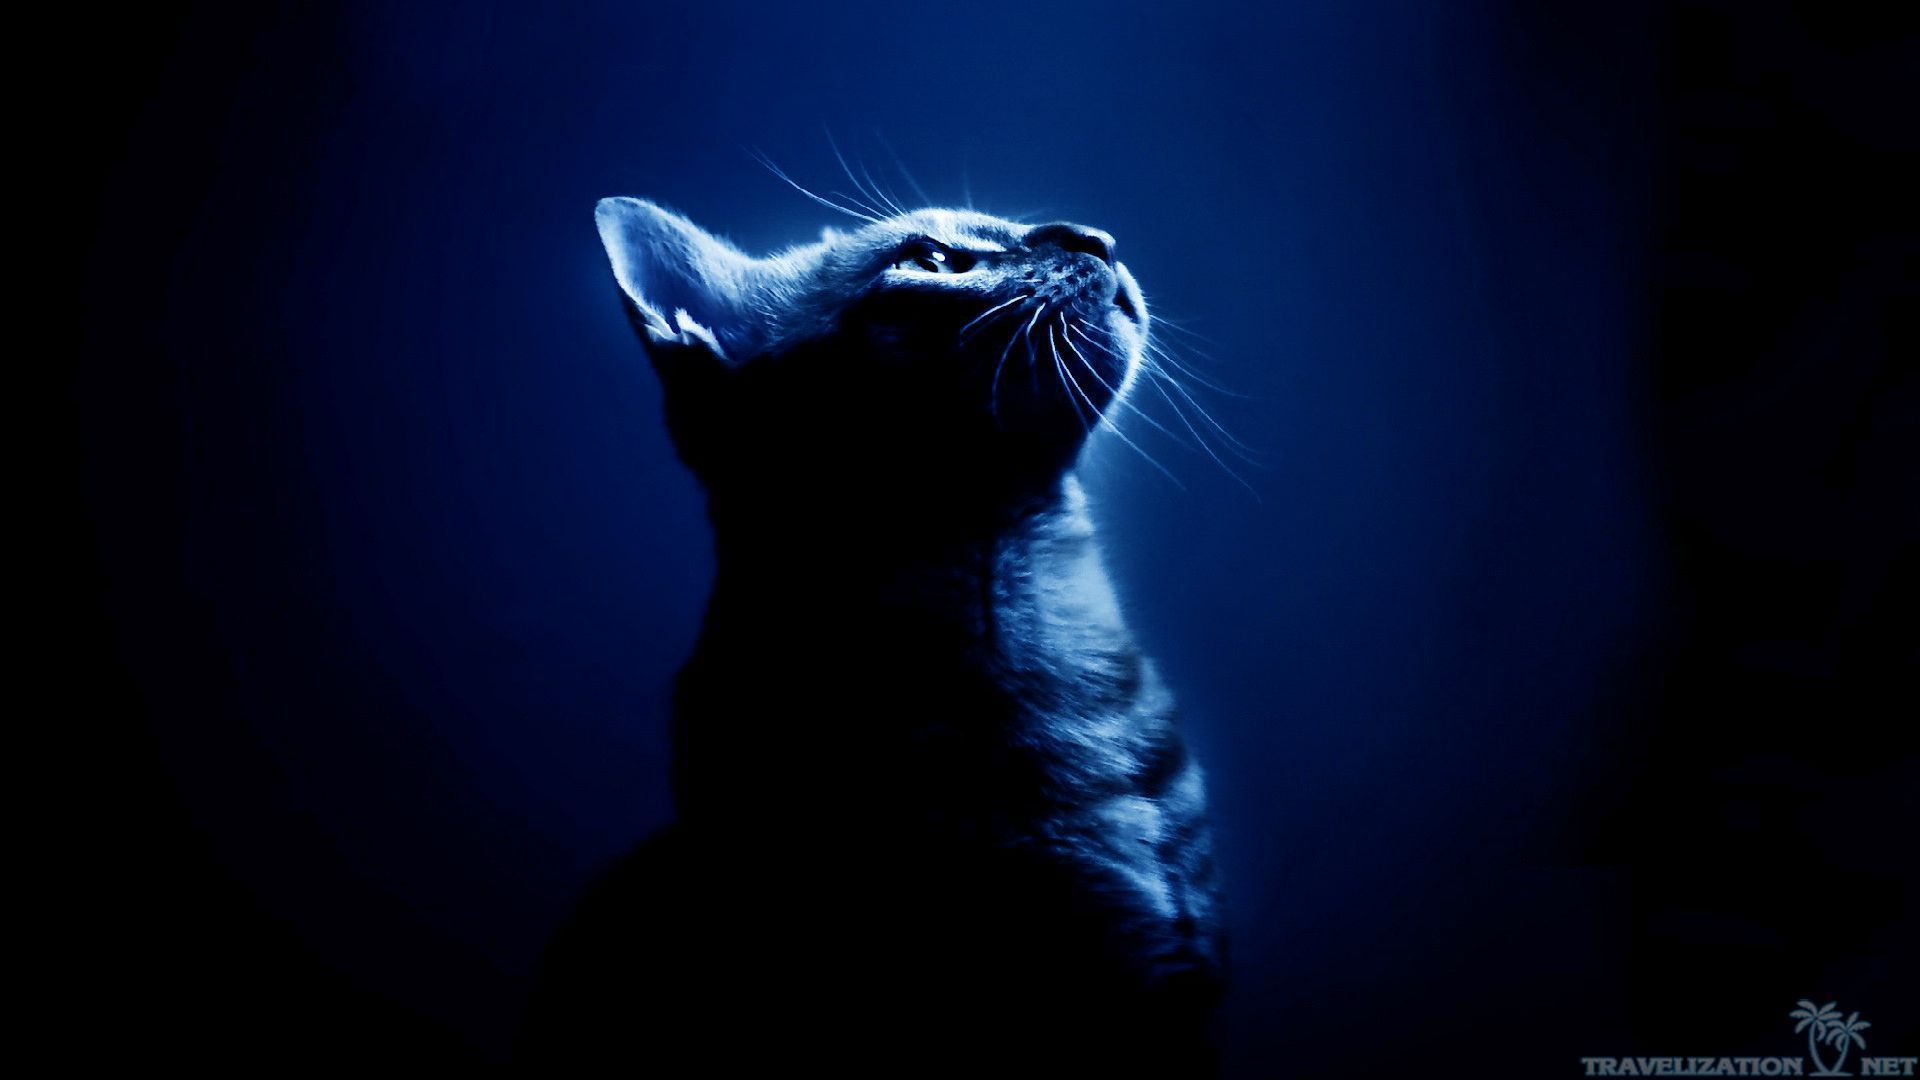 1920x1080 Cool Cat Backgrounds - Wallpapers Browse